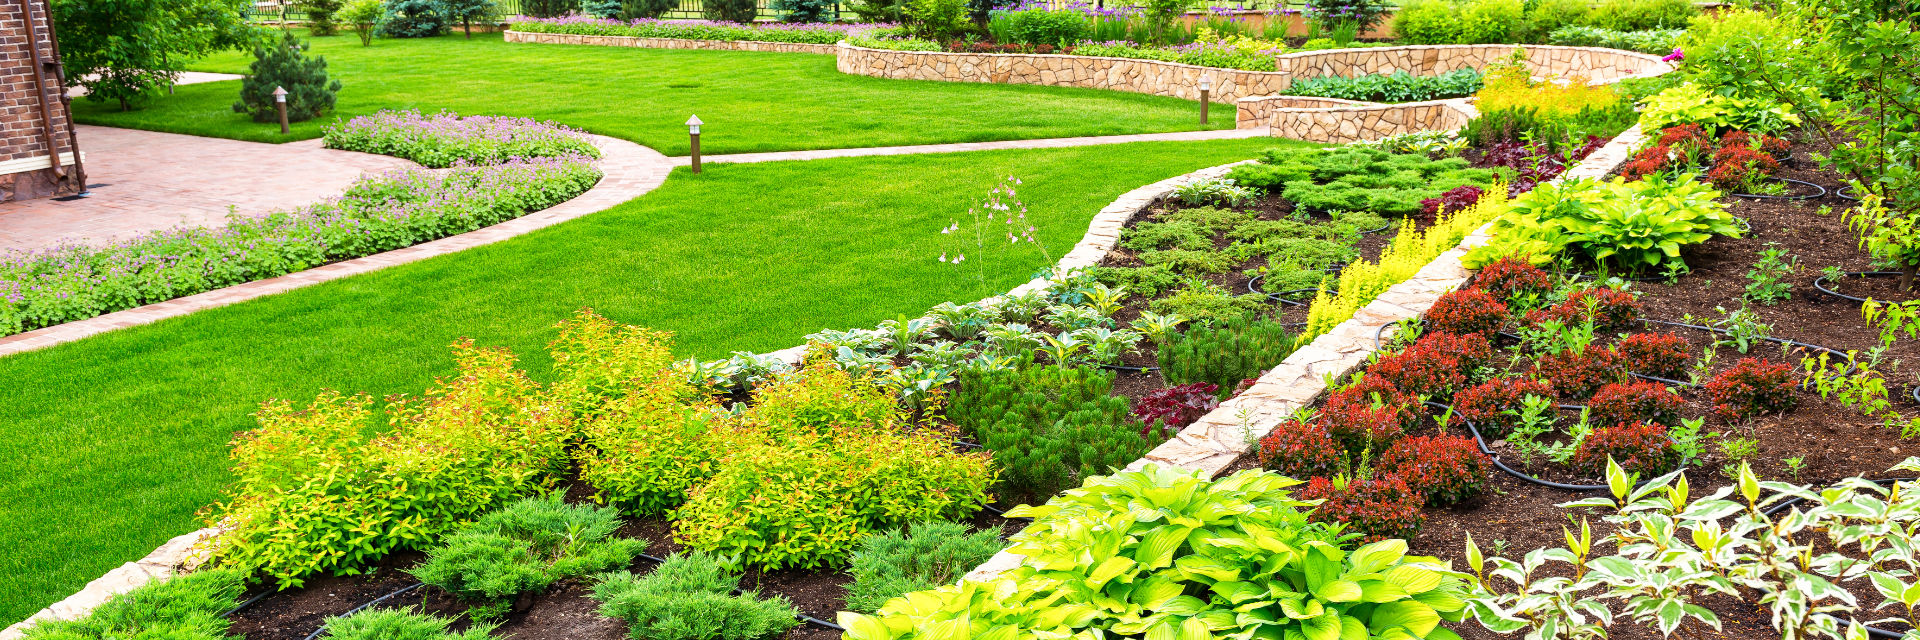 Professionally landscaped backyard with manicured lawn.